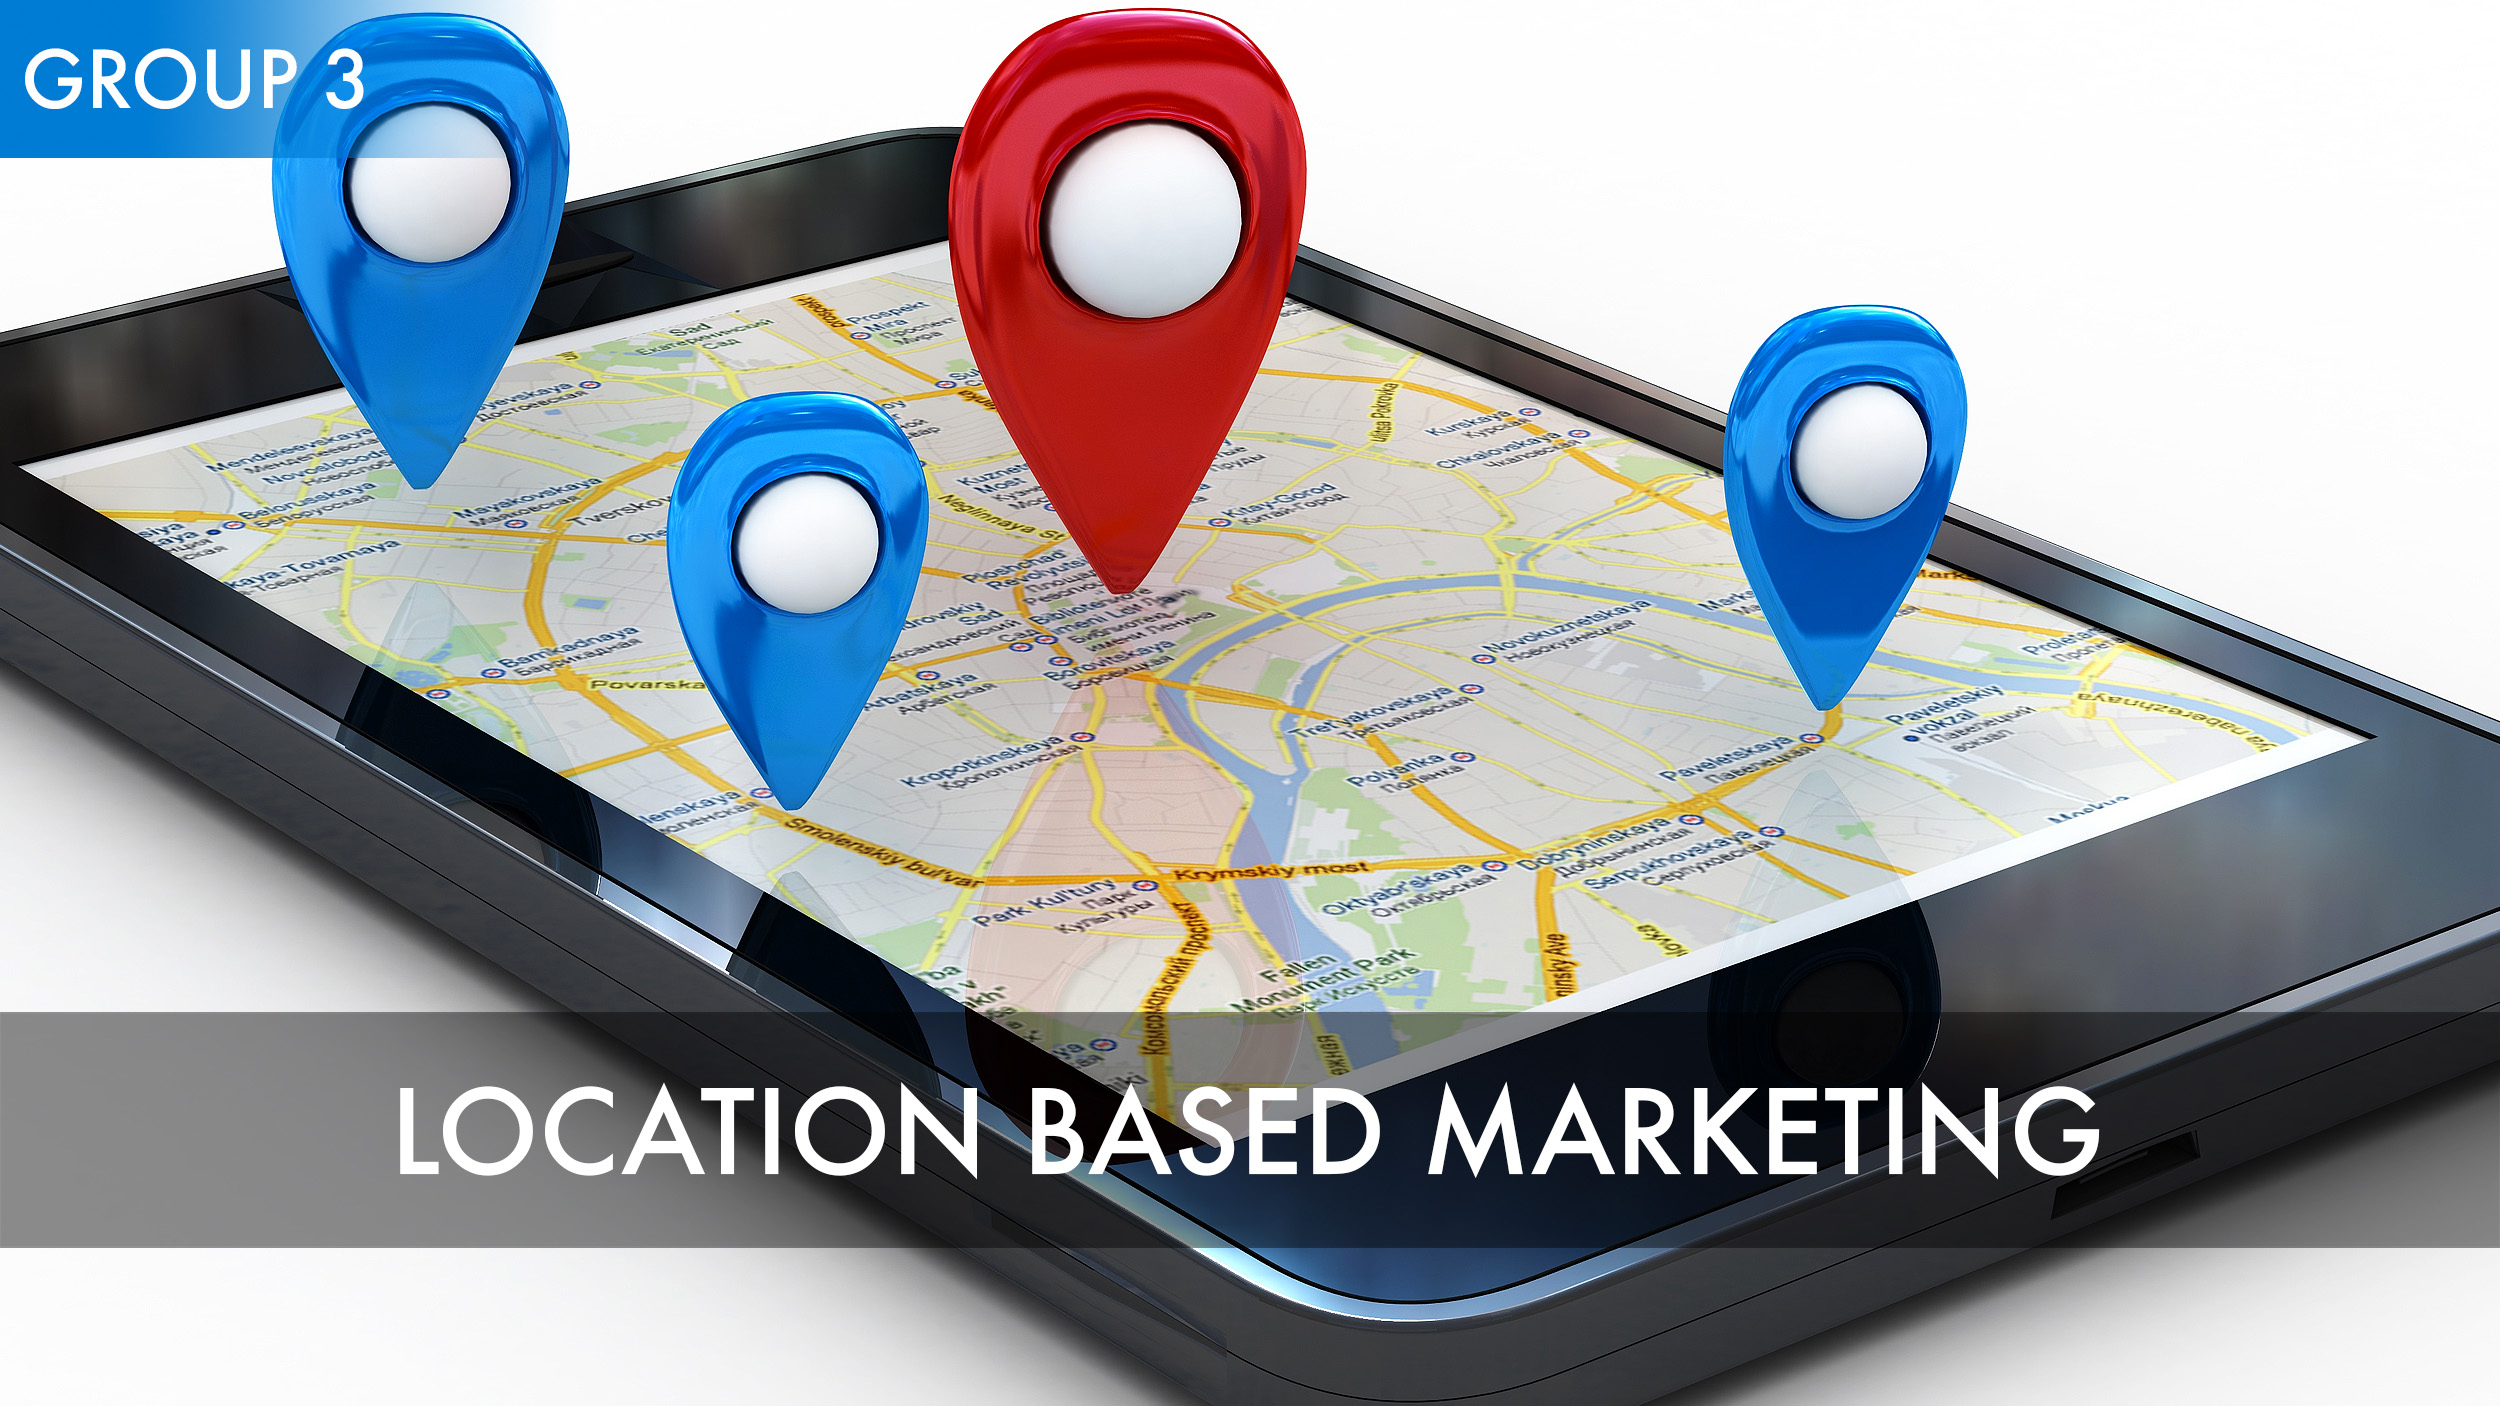 Location Based Marketing - Geolocation (Group 3).jpg